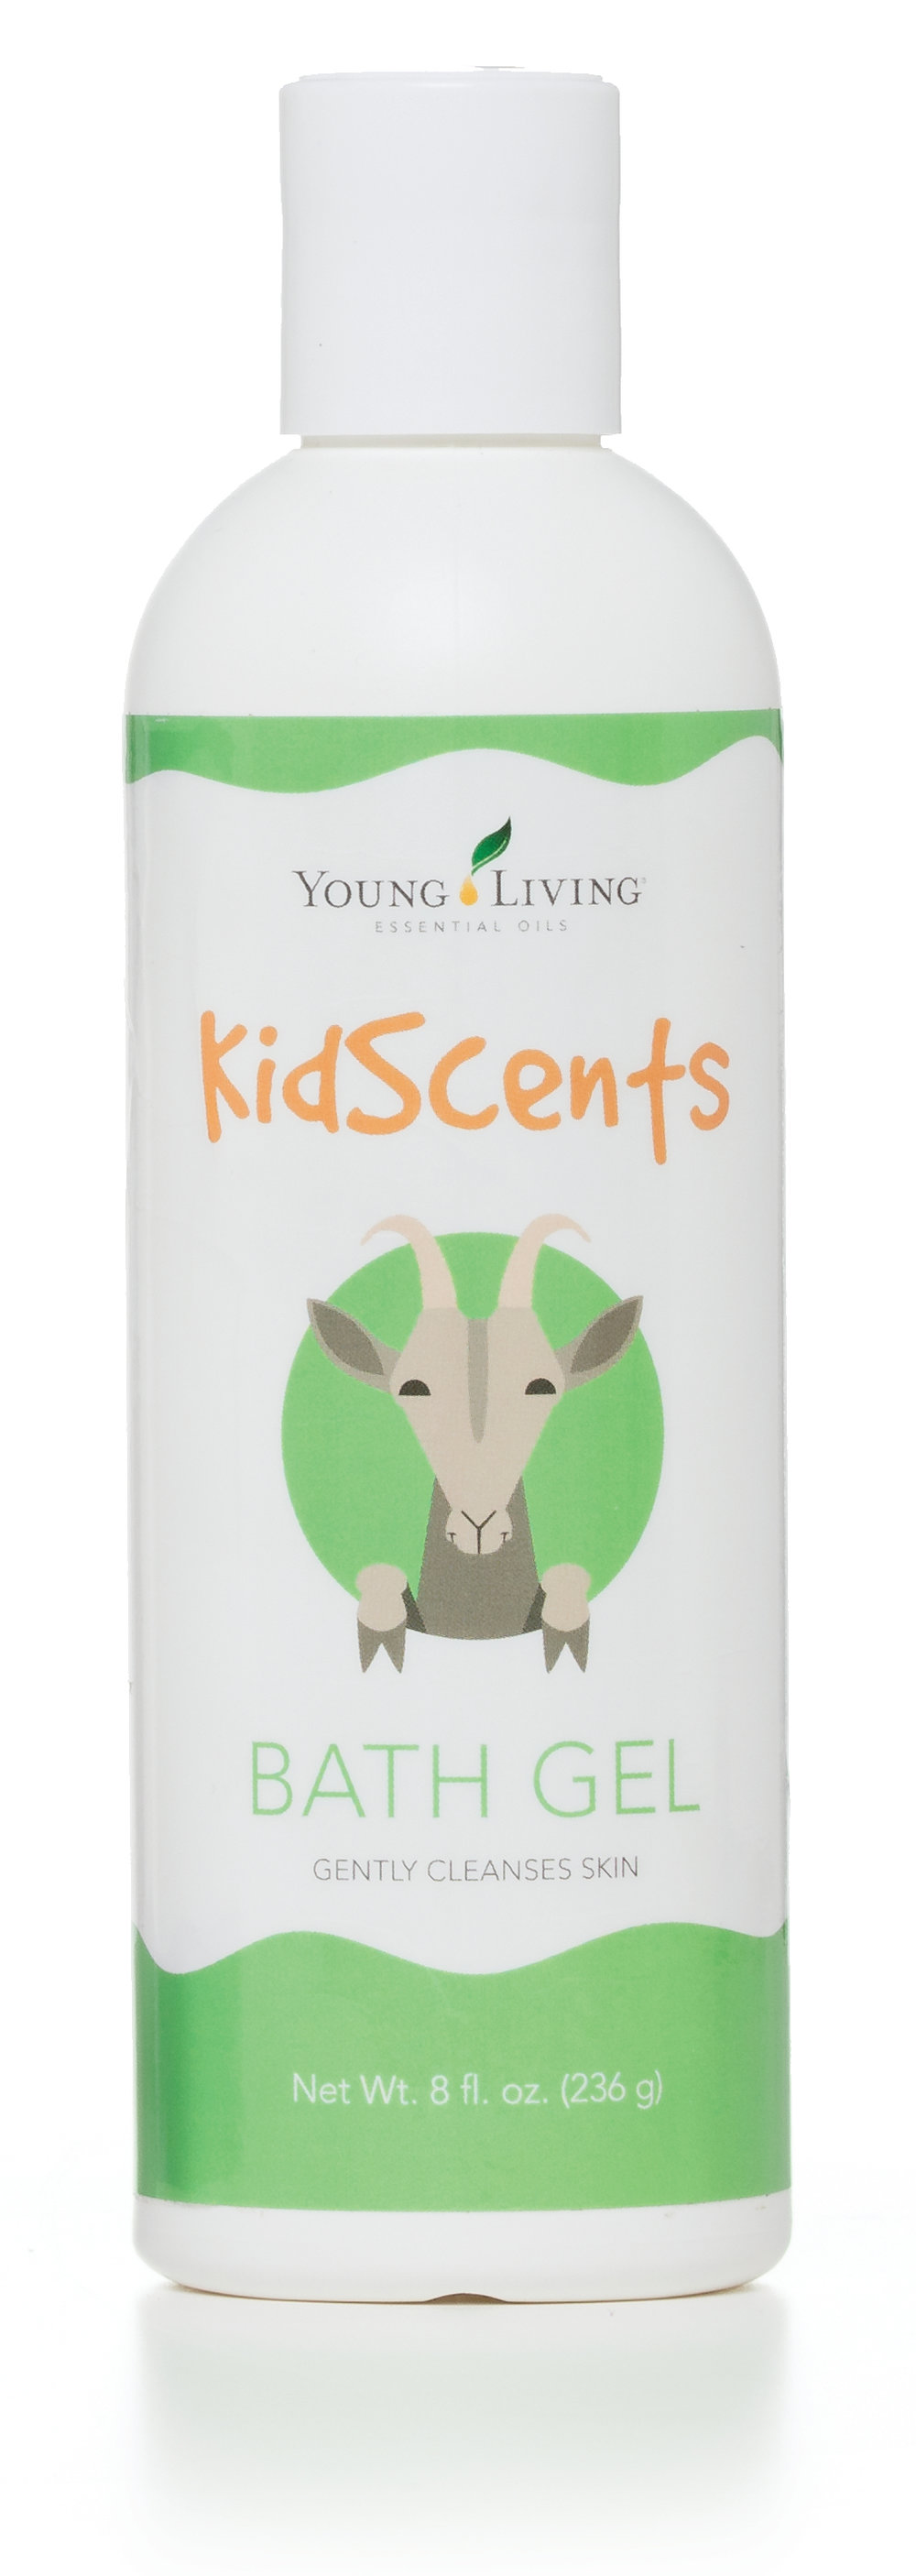 Kidscents Bath Gel.jpg